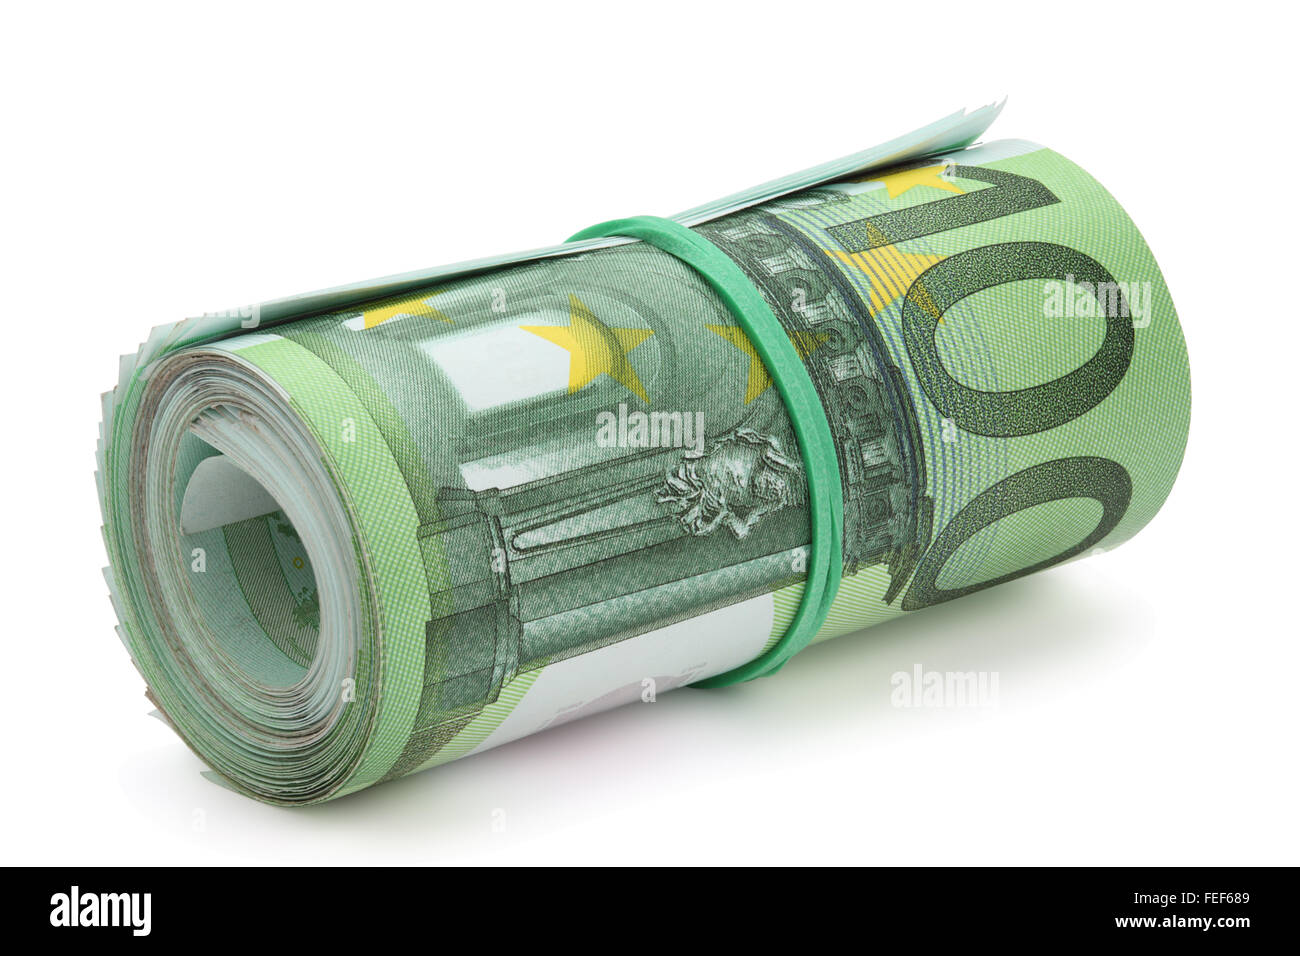 Roll of one hundred euro banknotes with a rubber band, isolated on the white background, clipping path included. - Stock Image